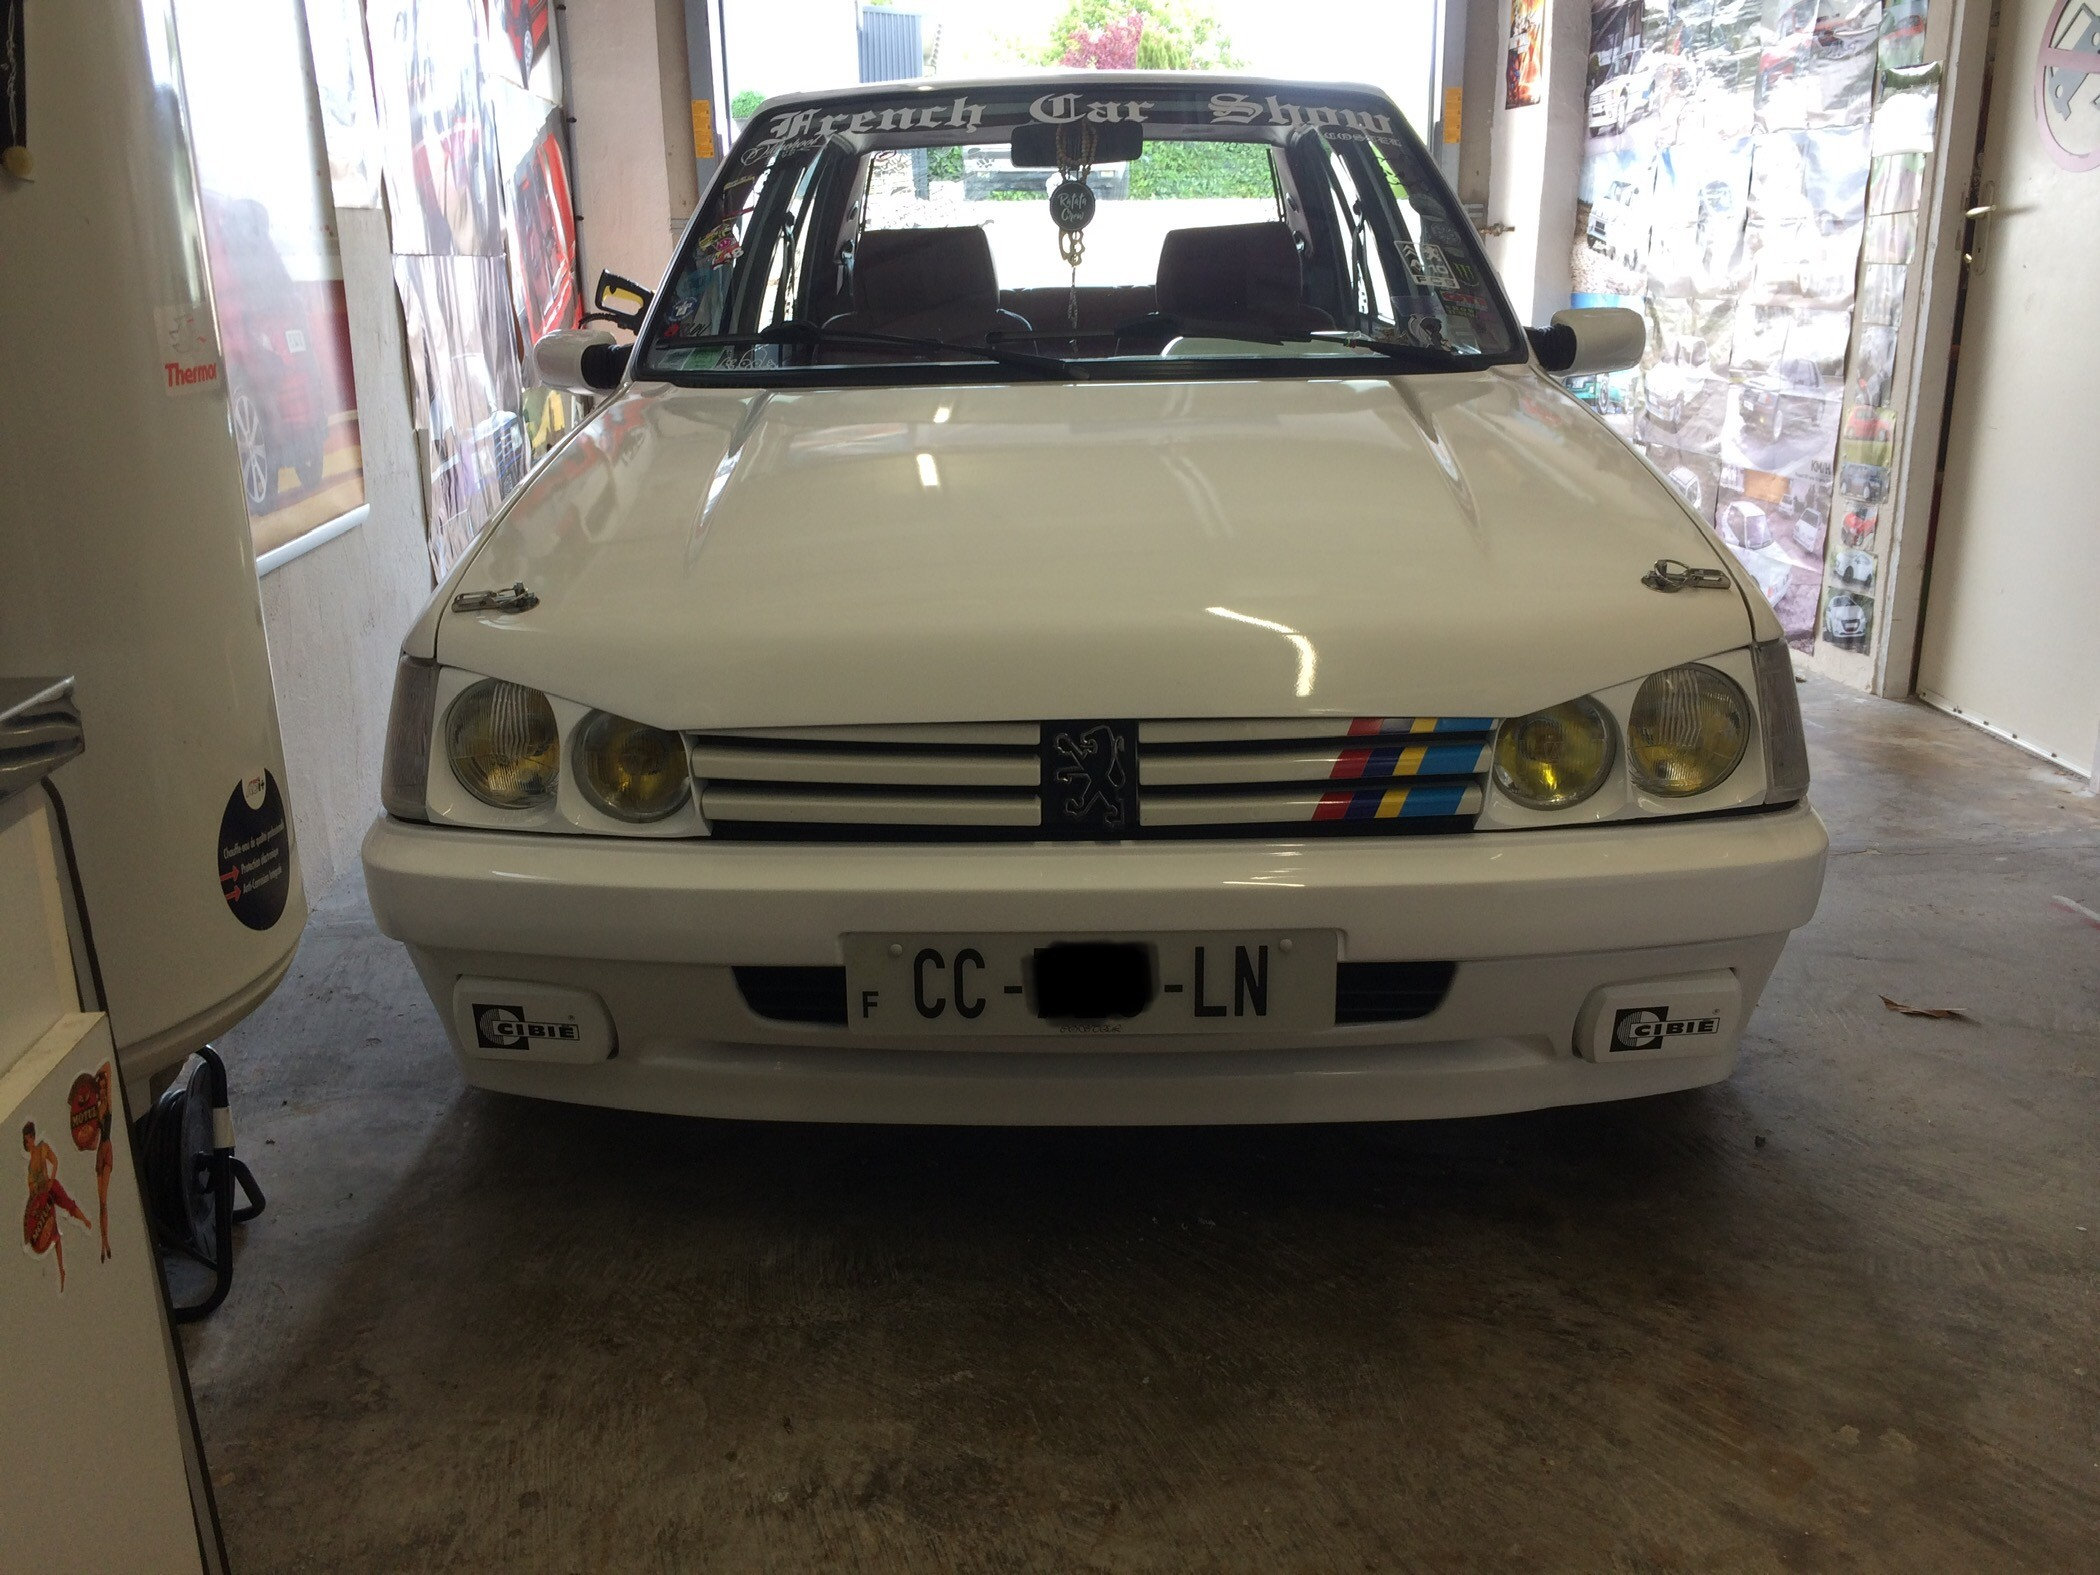 peugeot 205 tuning static car french car low style clean (18)